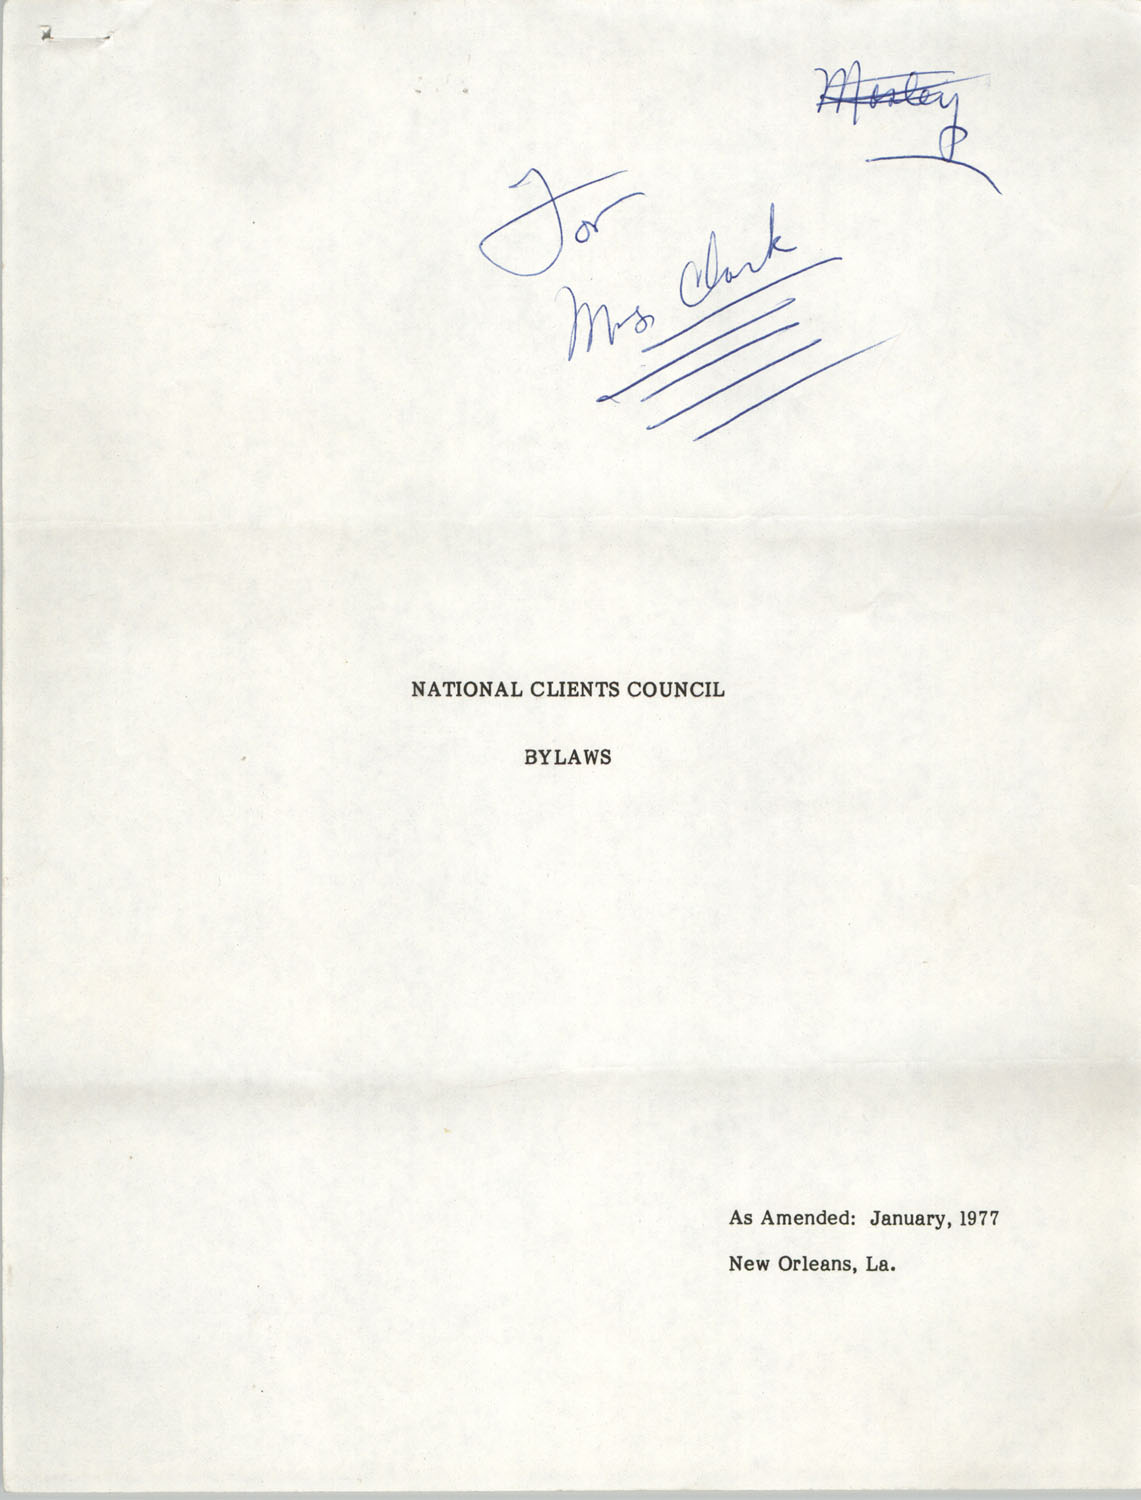 National Clients Council Bylaws, January 1977